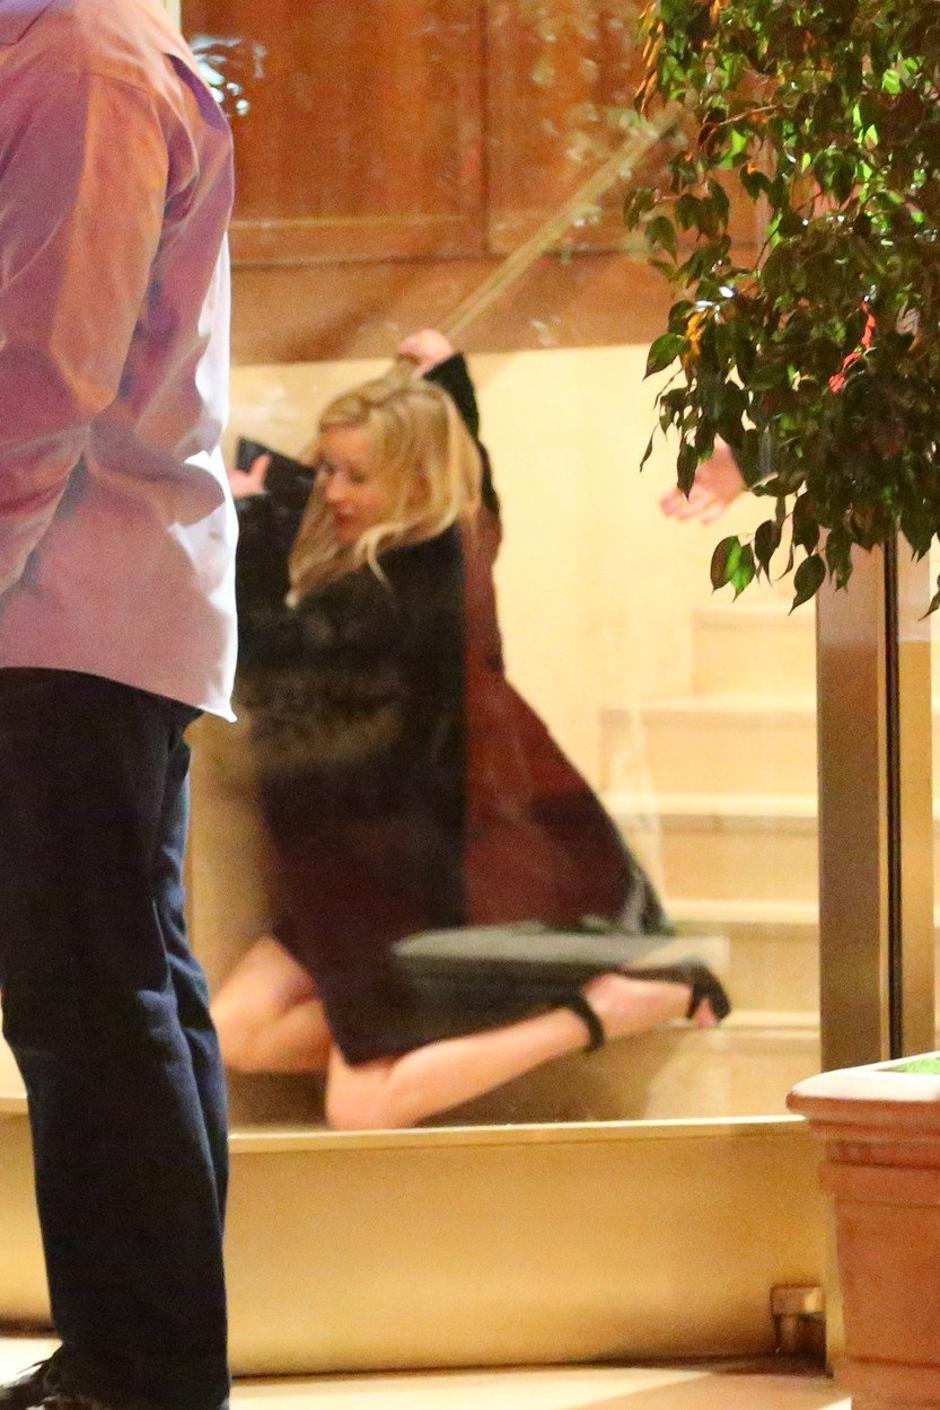 Reese Witherspoon takes a spill as she leaves the Sunset Tower Hotel after attending Jennifer Aniston's 50th birthday party | Autor: Profimedia